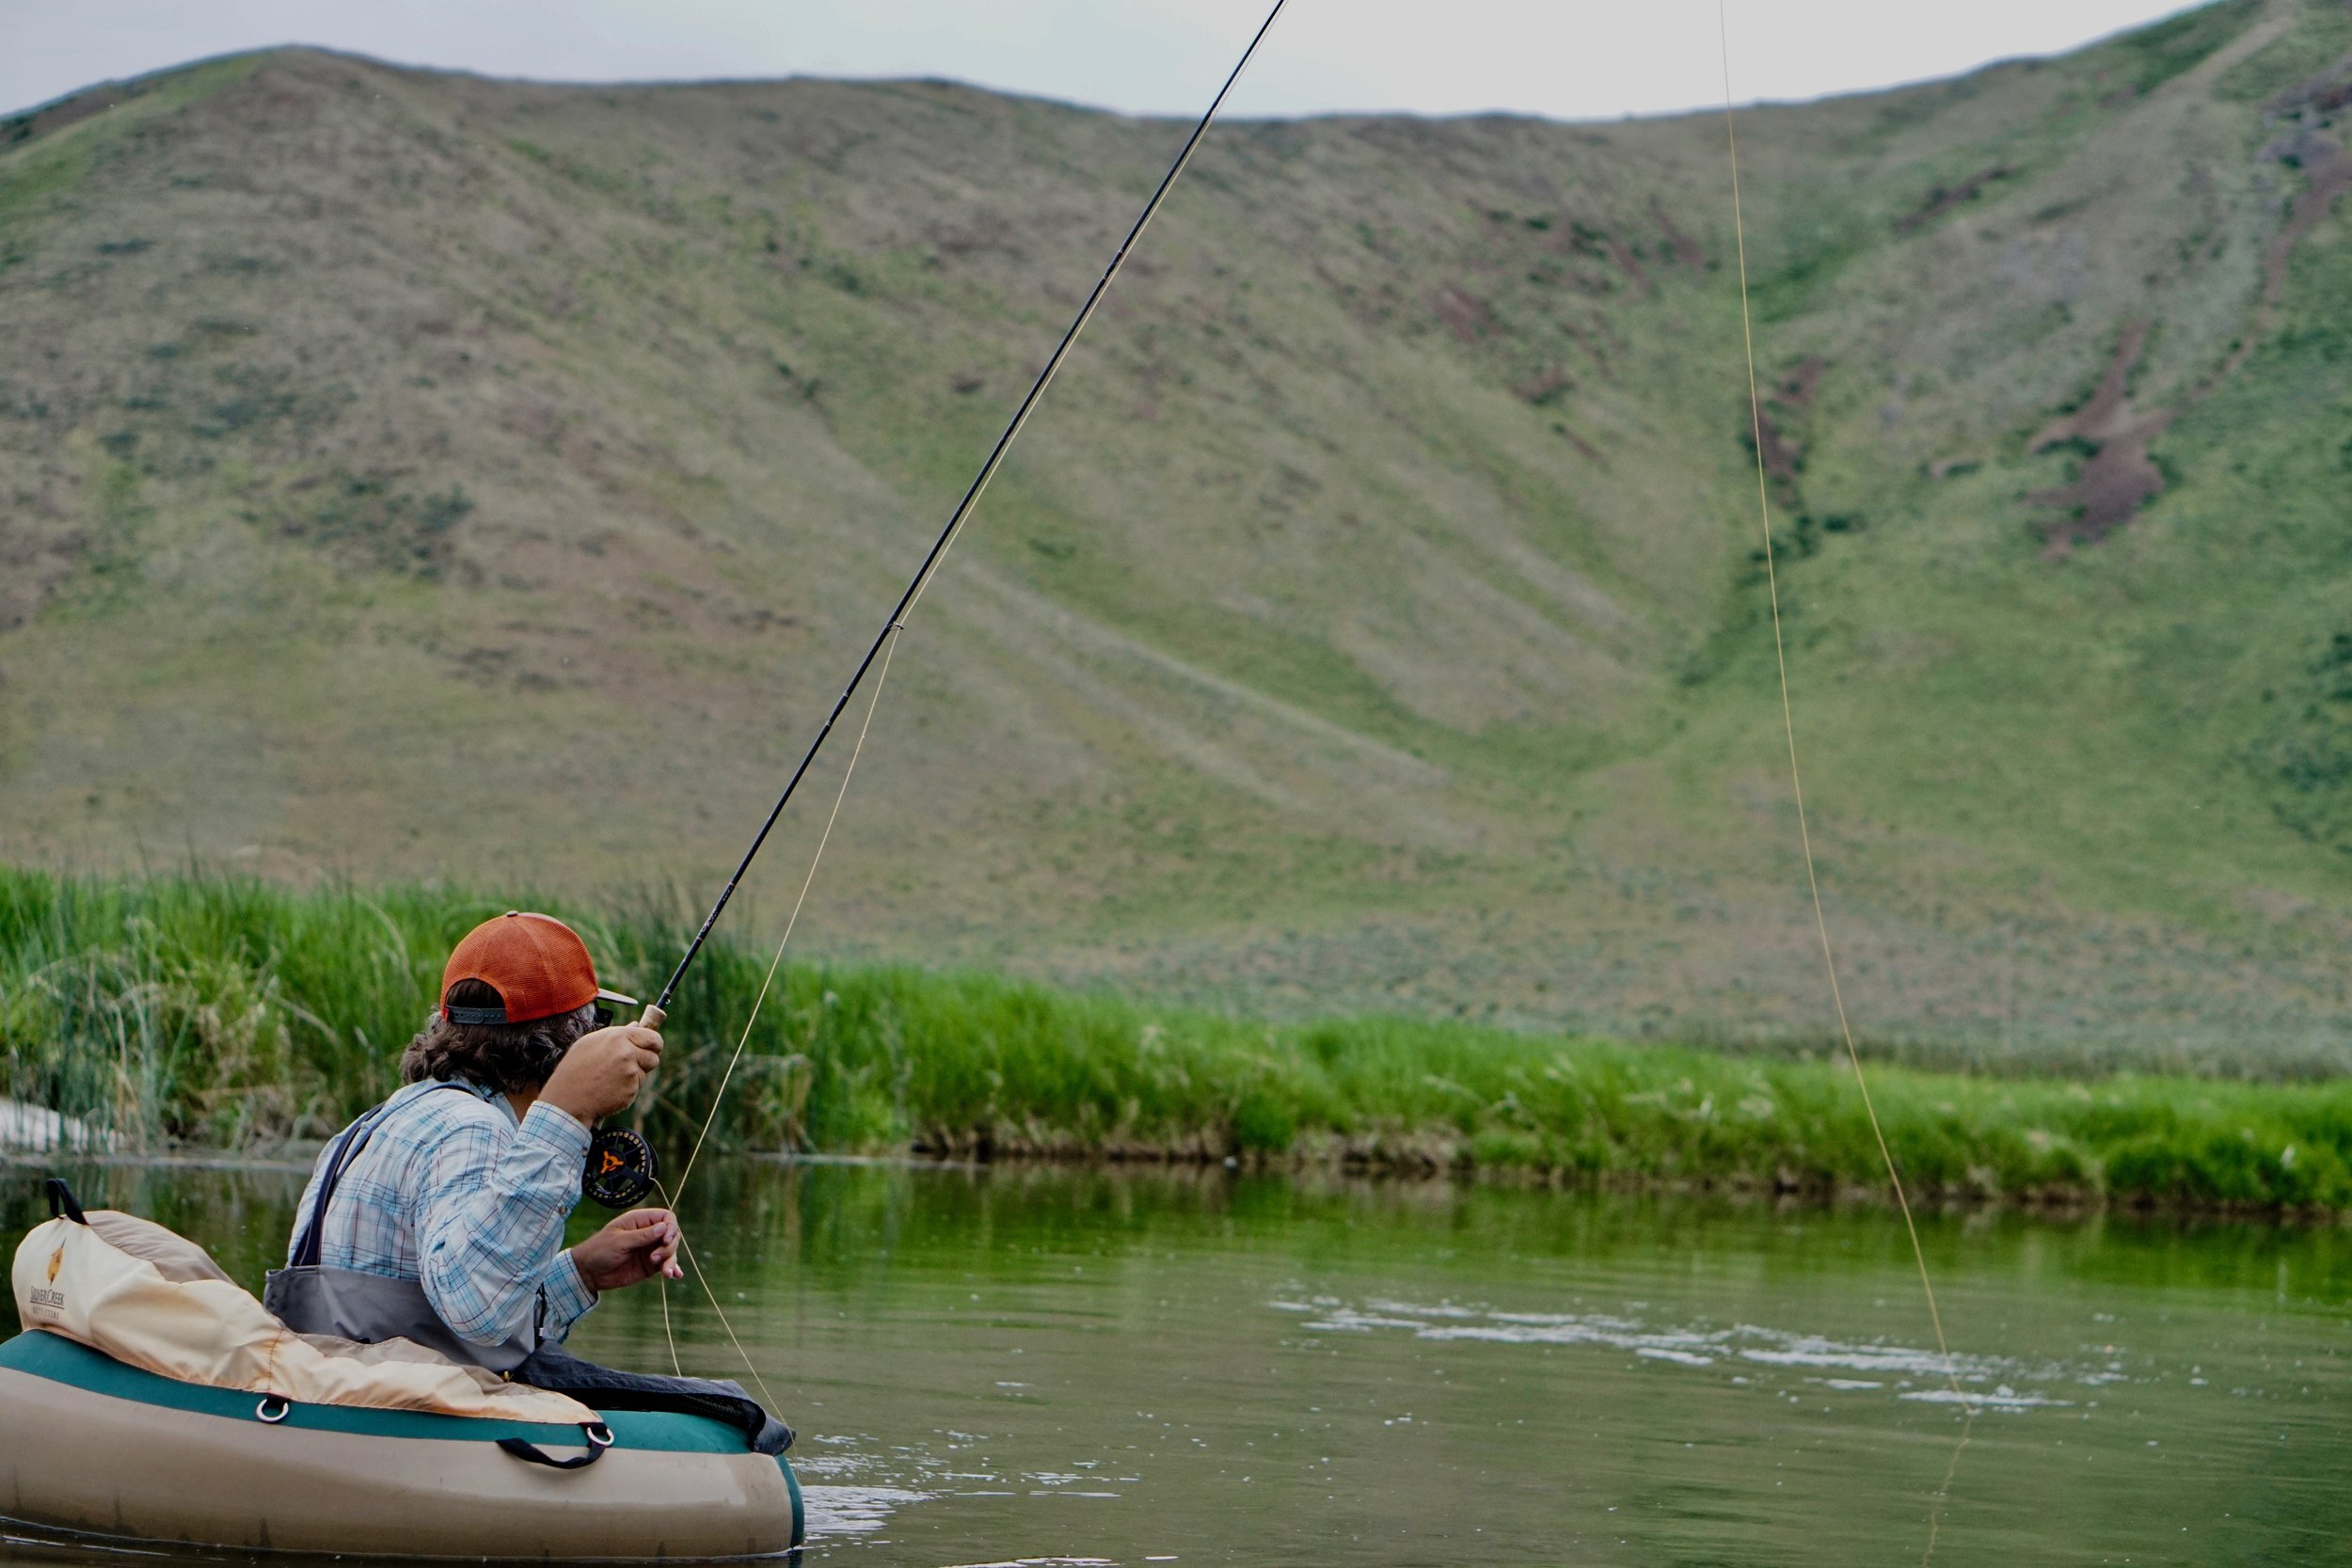 Silver Creek Outfitter's Guide Taite Pearson Pulls back the tip to tighten the rig before lowering the rod tip to drift to a rising fish.